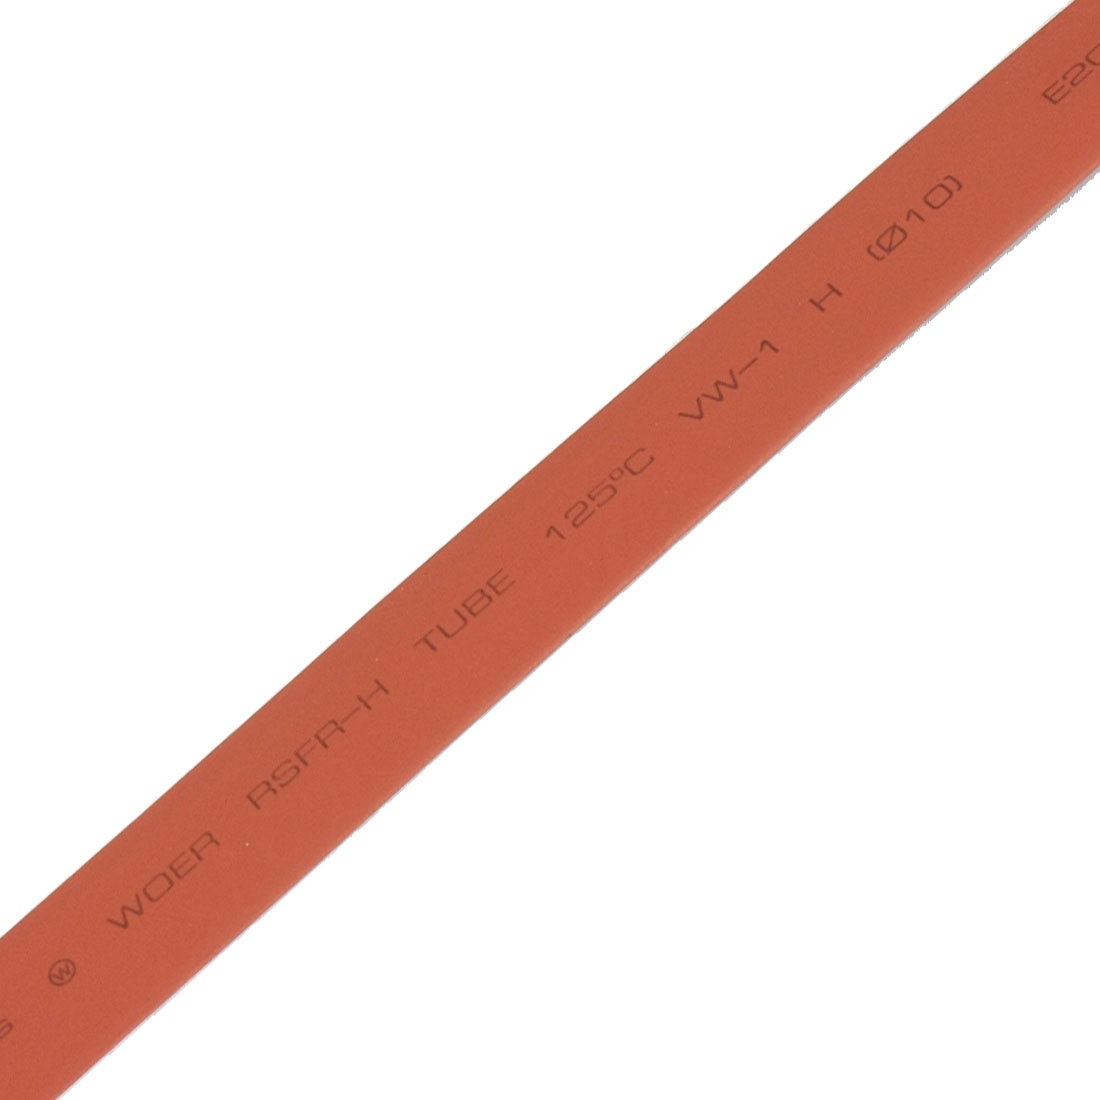 13.1 Ft 4M Long 10mm Dia. Red Polyolefin Heat Shrinkable Tube